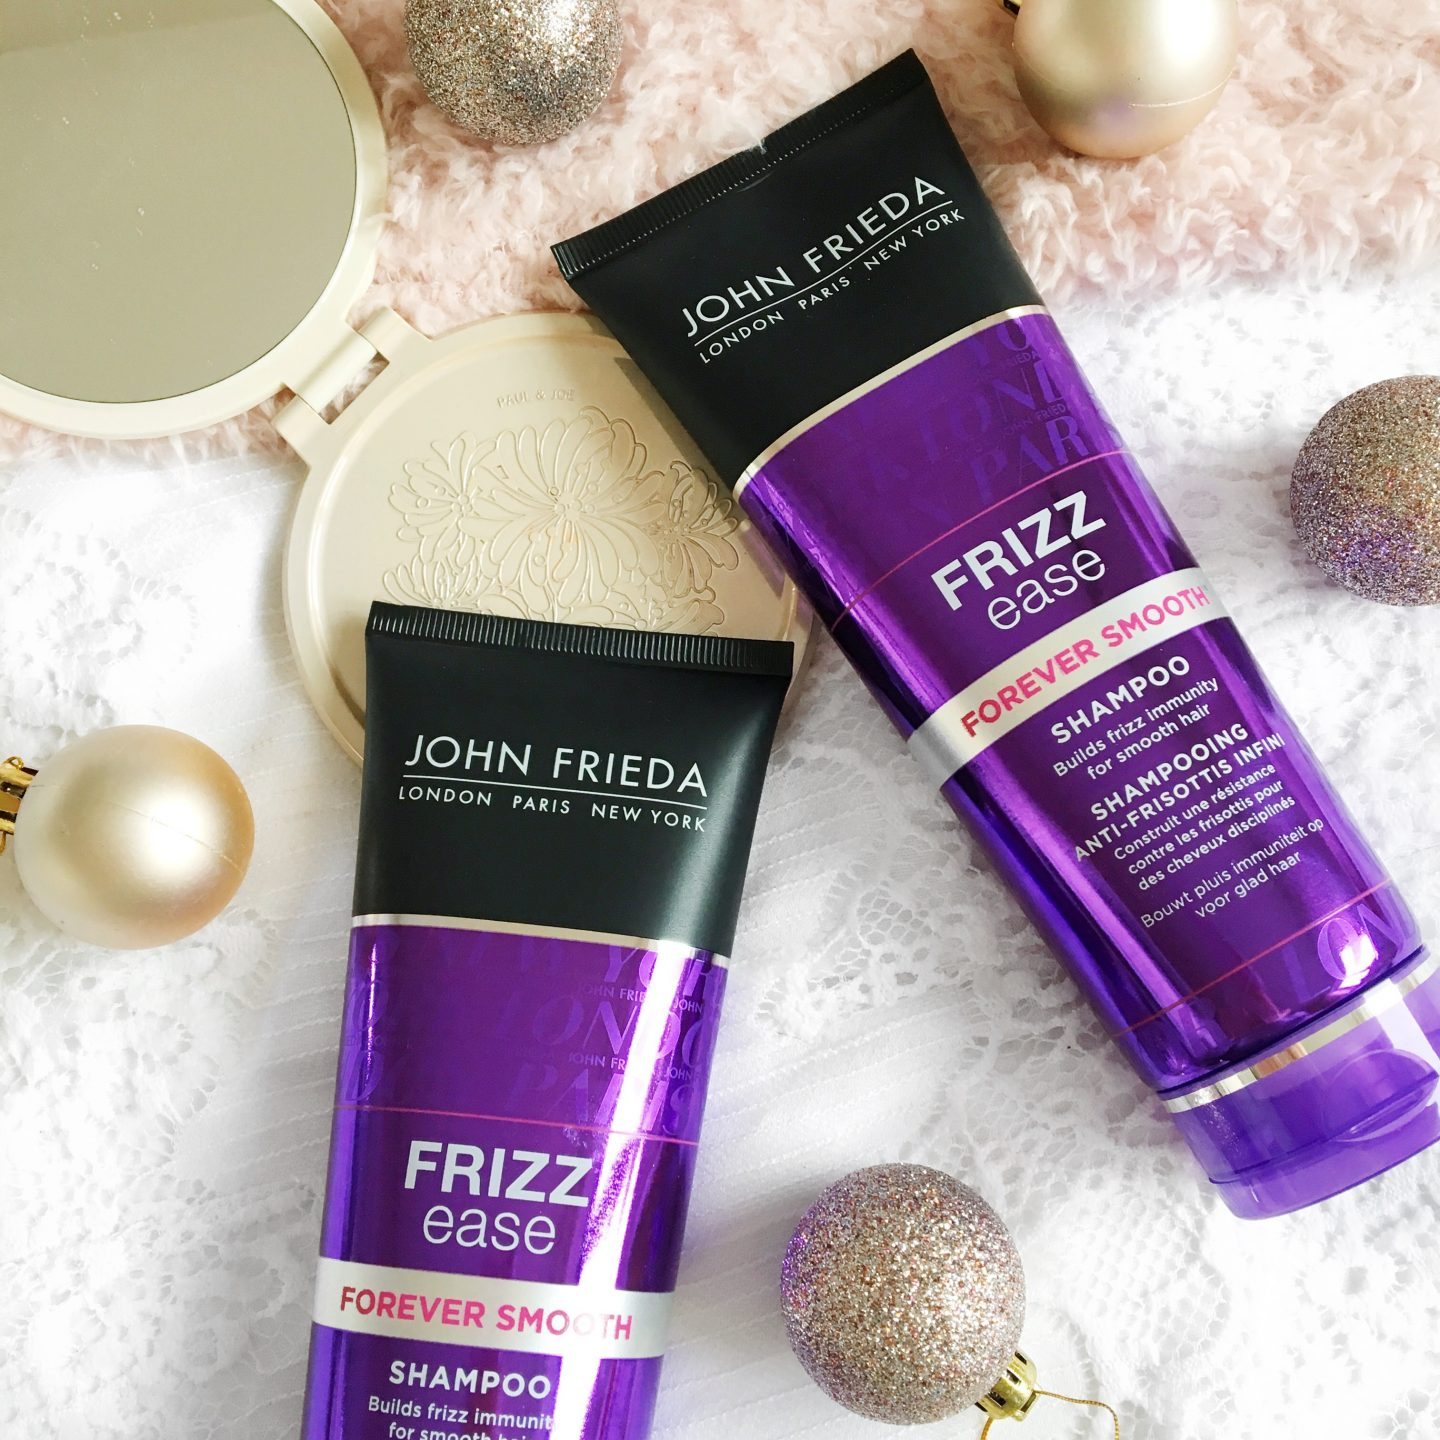 John Frieda Frizz Ease Review shampoo